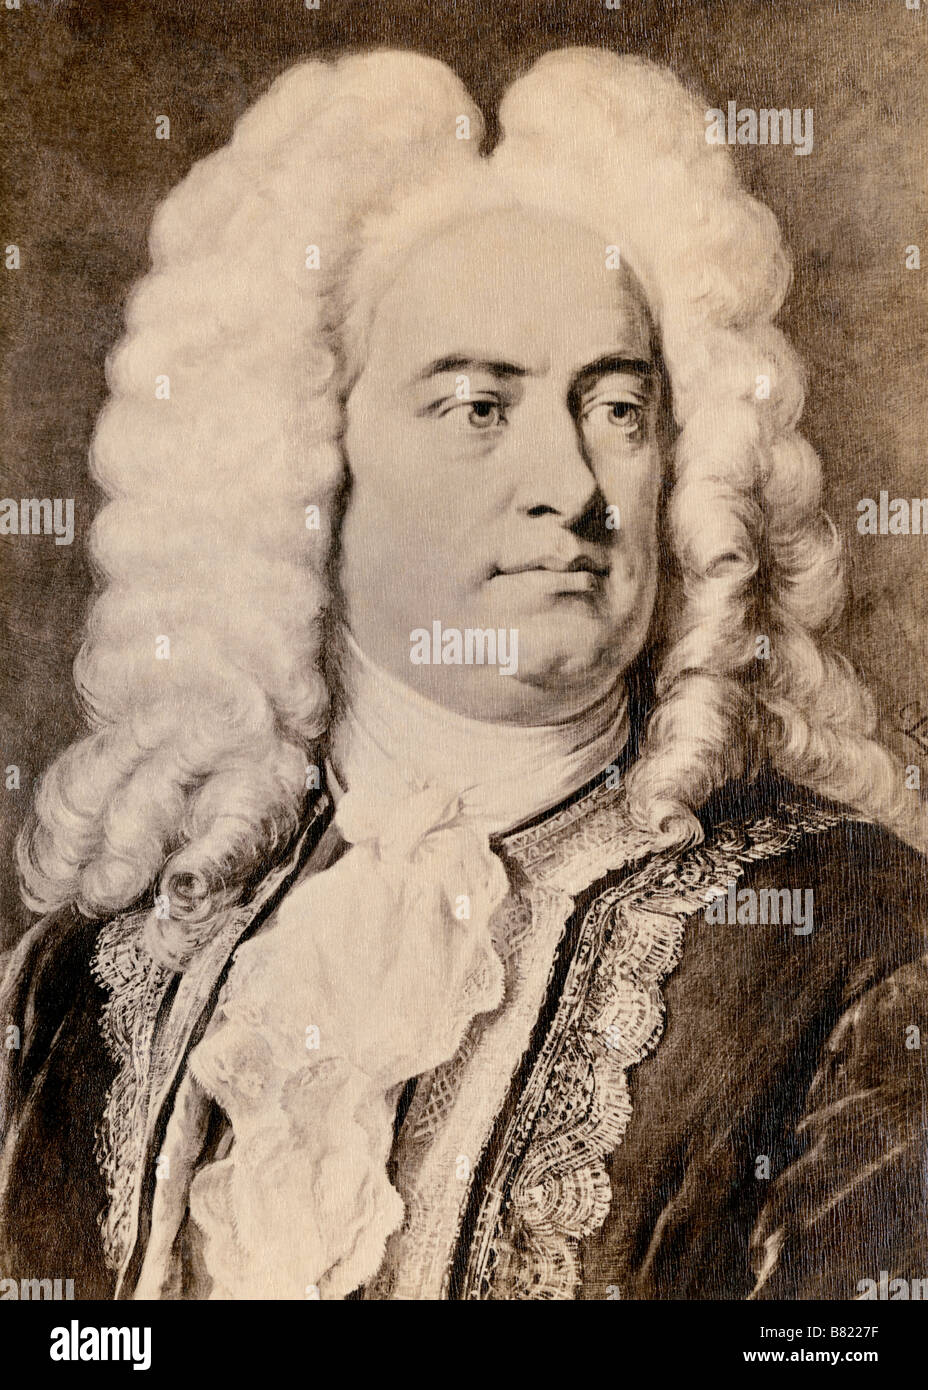 Georg Friedrich Handel. Photograph of a portrait by Jager - Stock Image